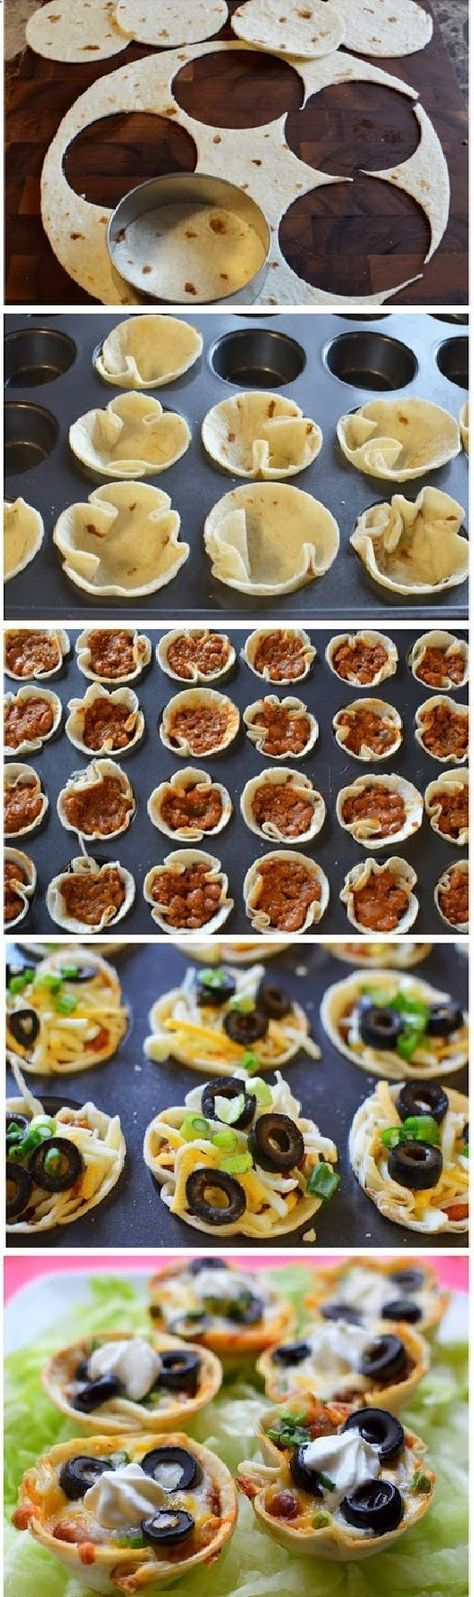 Mini taco bites baked in a cupcake tin. Best. #recipe - with low carb tortillas!